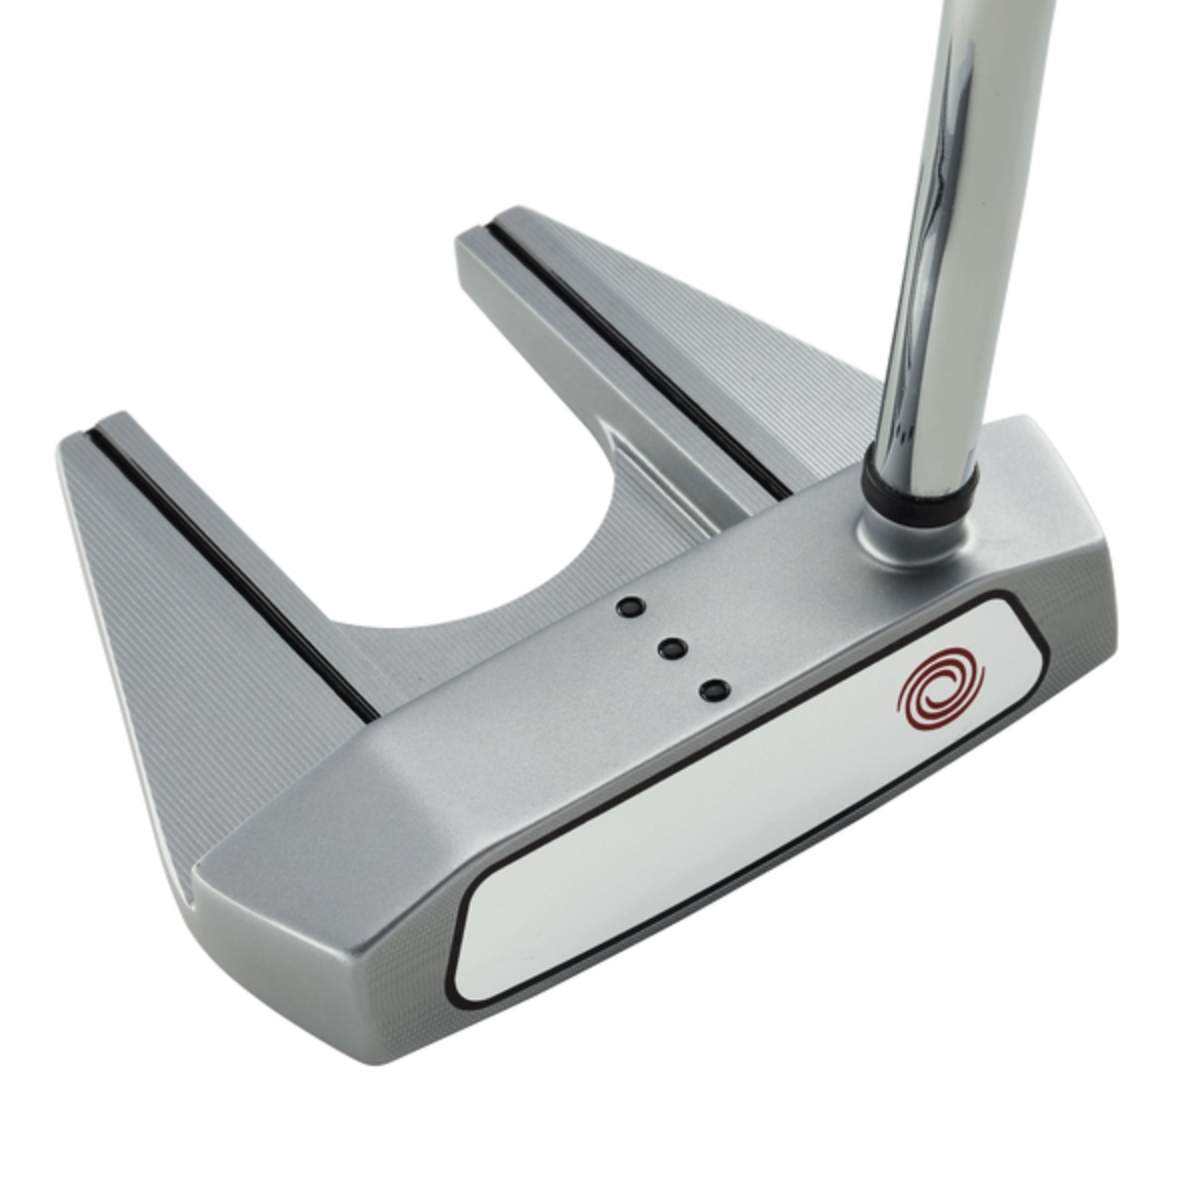 Odyssey White Hot OG #7 Left Hand Putter